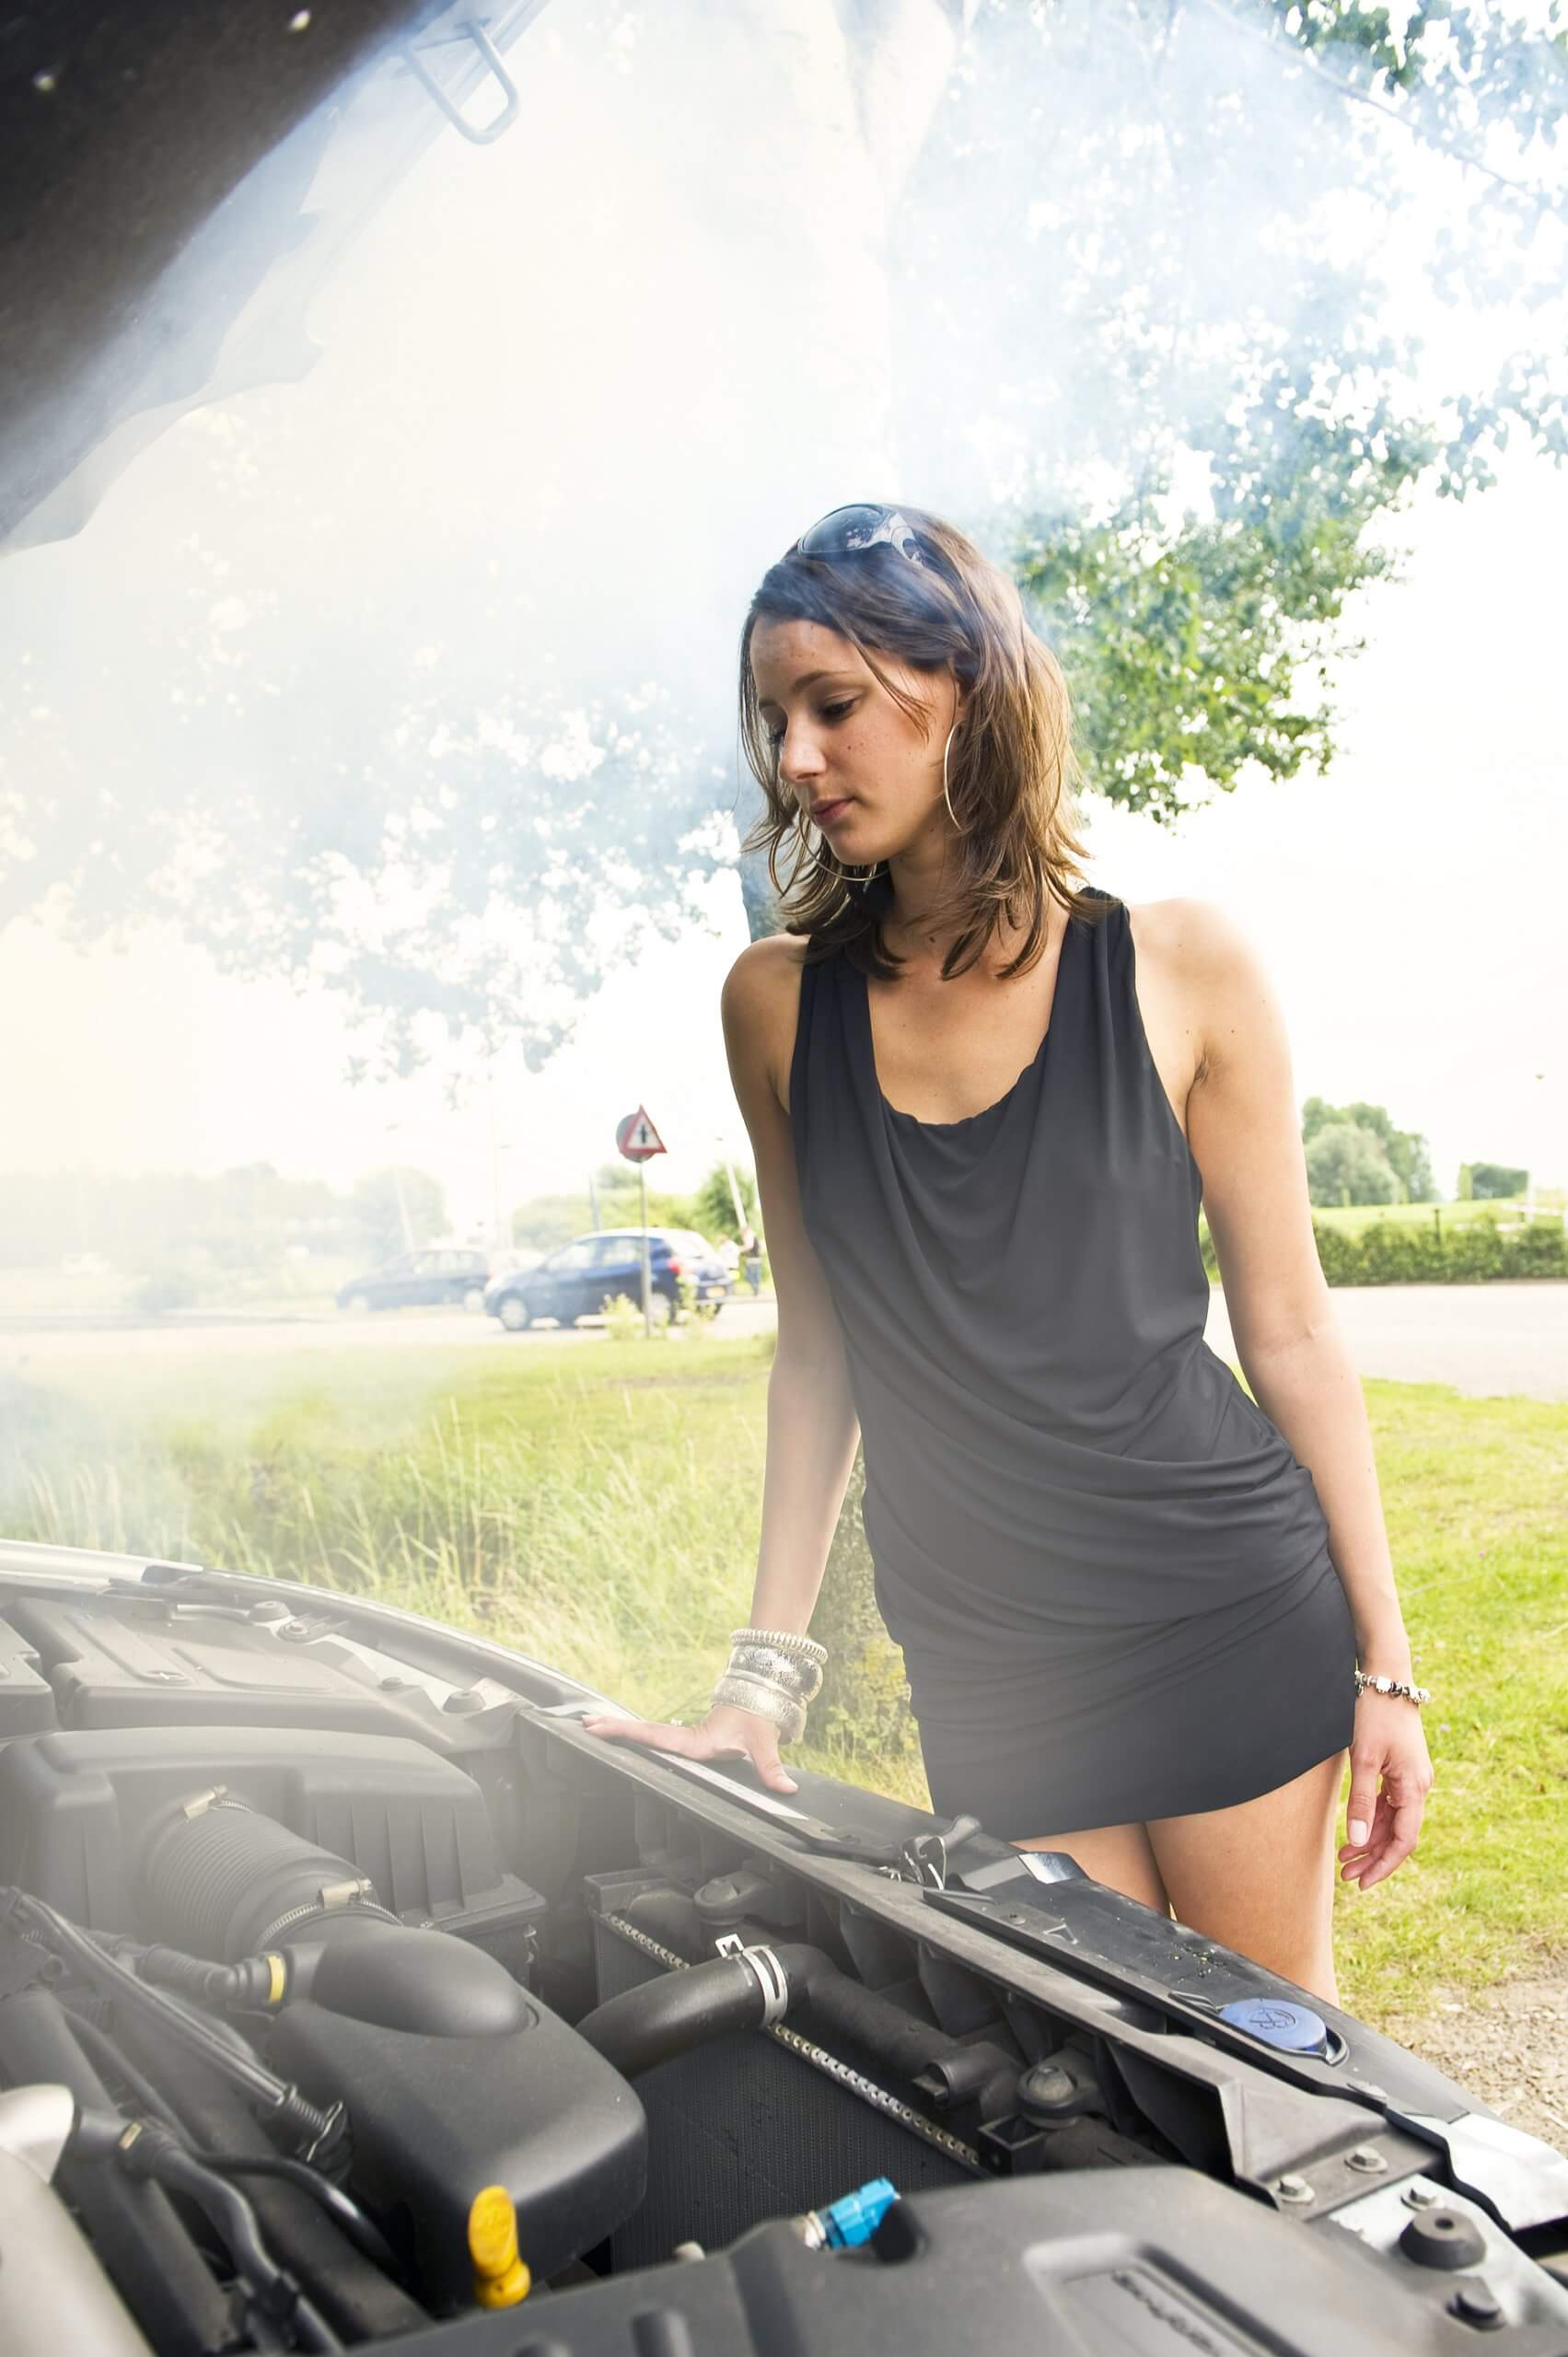 driver looking under the bonnet at smoking, overheating car engine